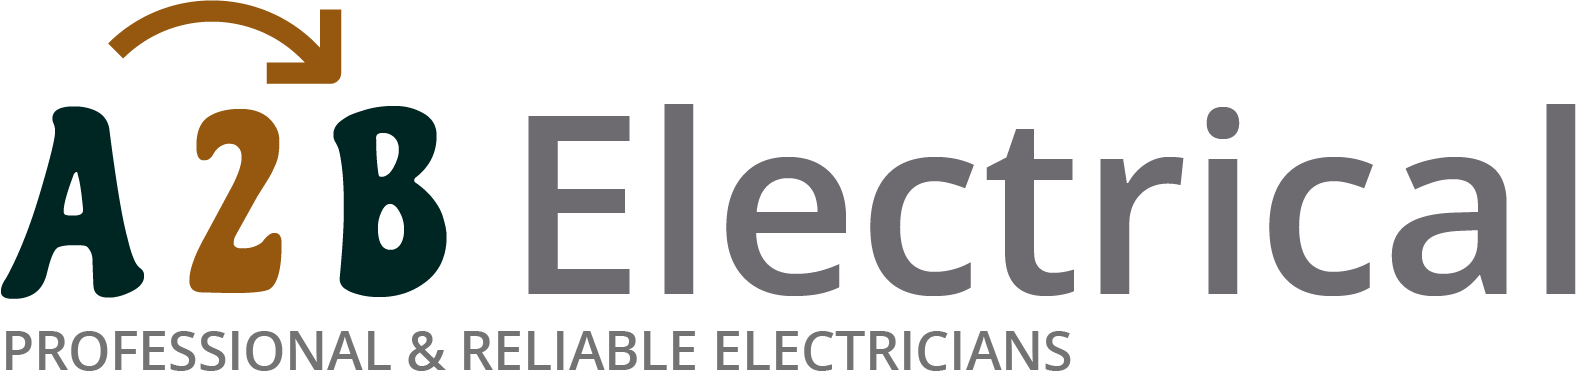 If you have electrical wiring problems in Norwood, we can provide an electrician to have a look for you.